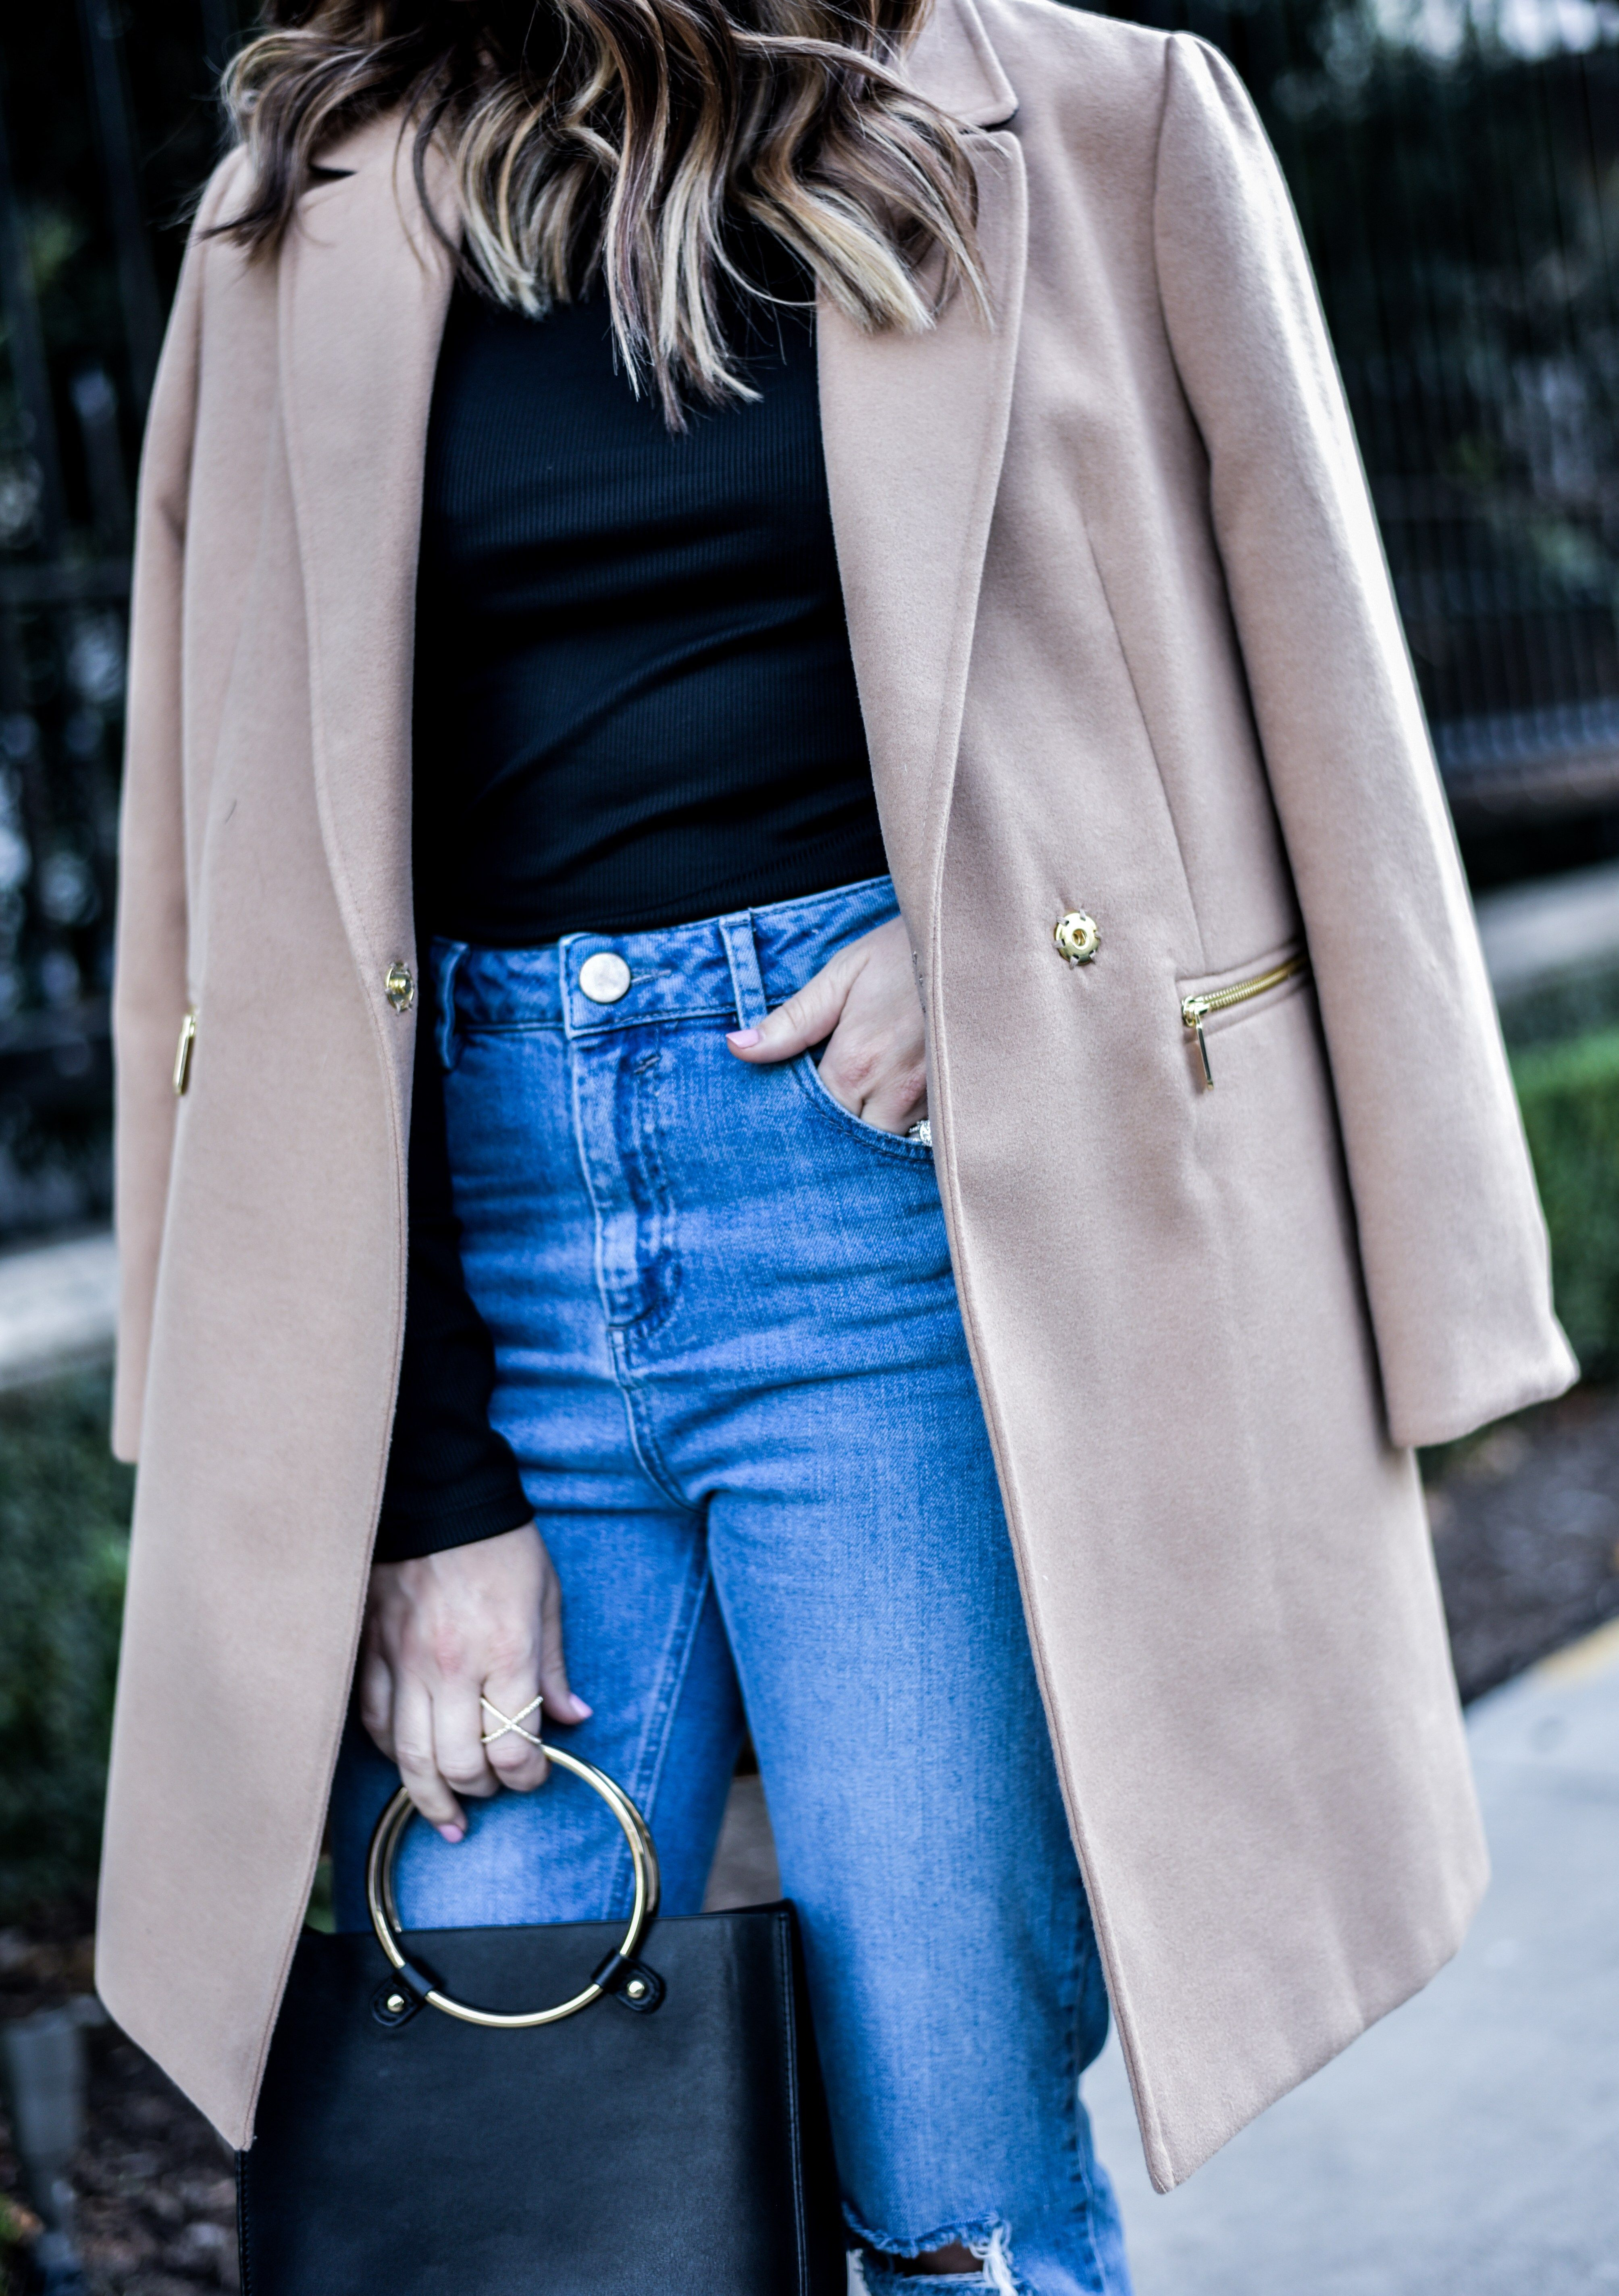 The best streetstyle from 2016 | Loved styling this camel colored coat with mom jeans, http://www.flauntandcenter.com/